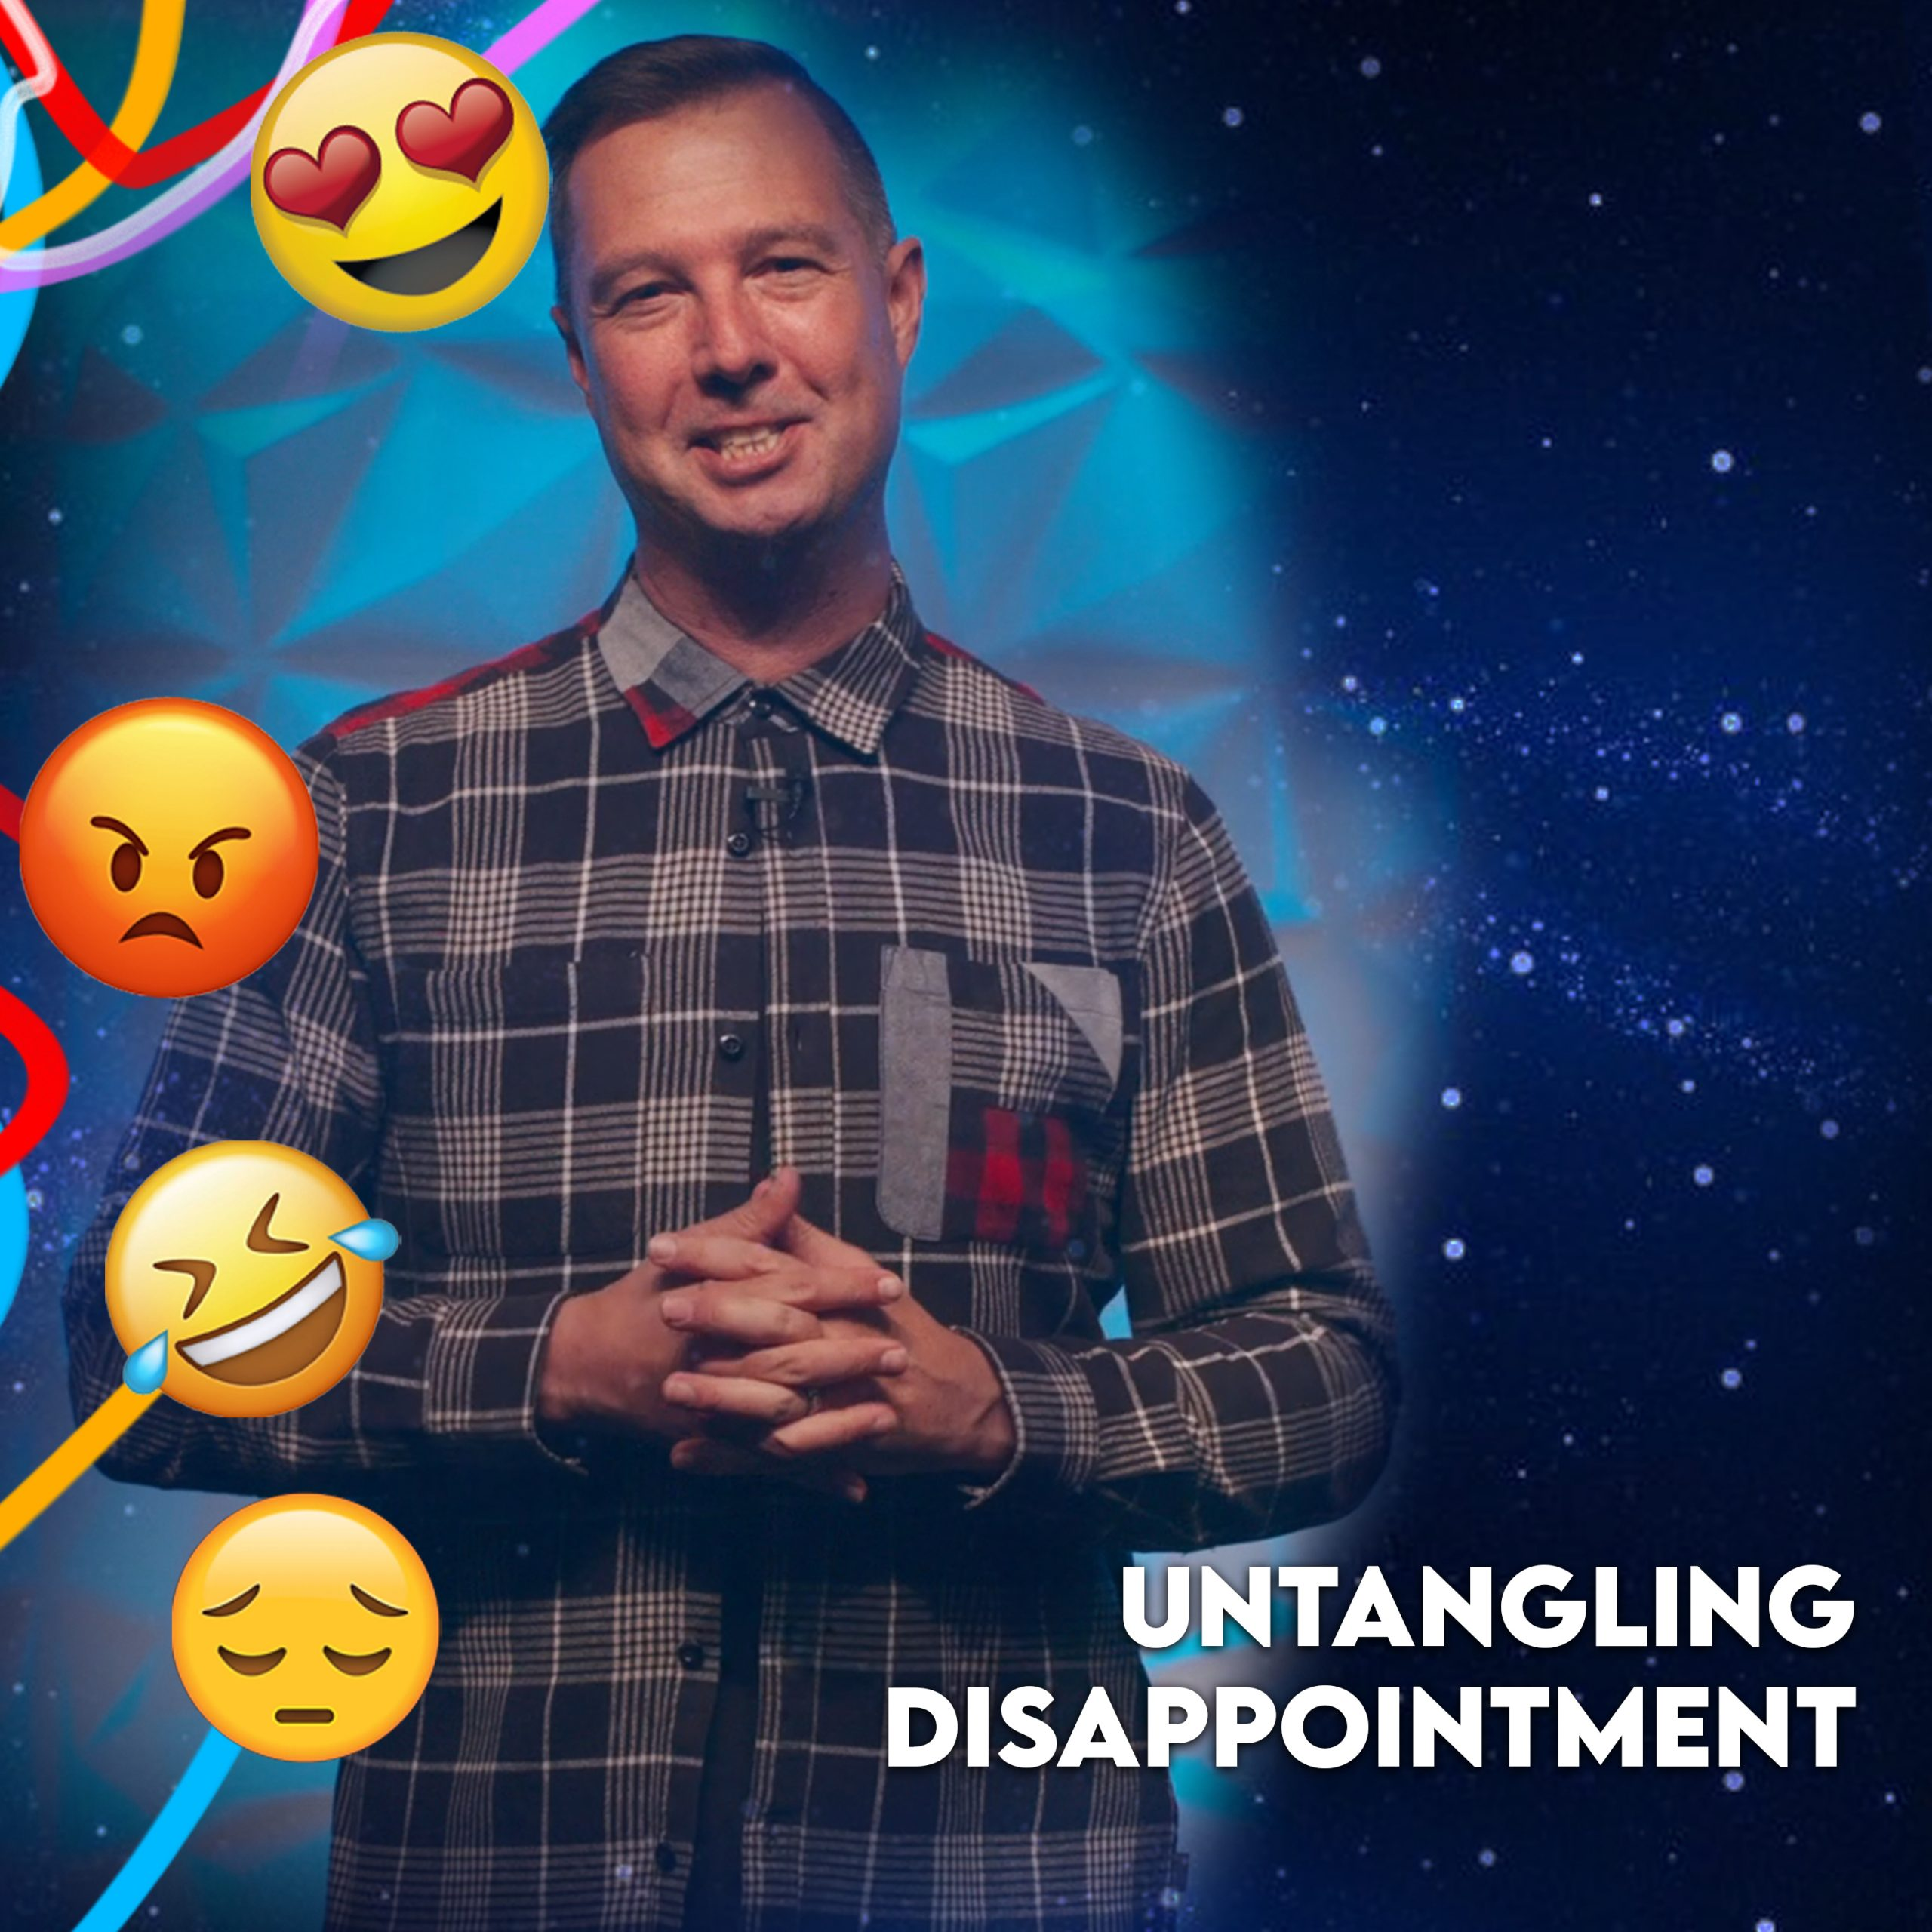 Untangling Disappointment